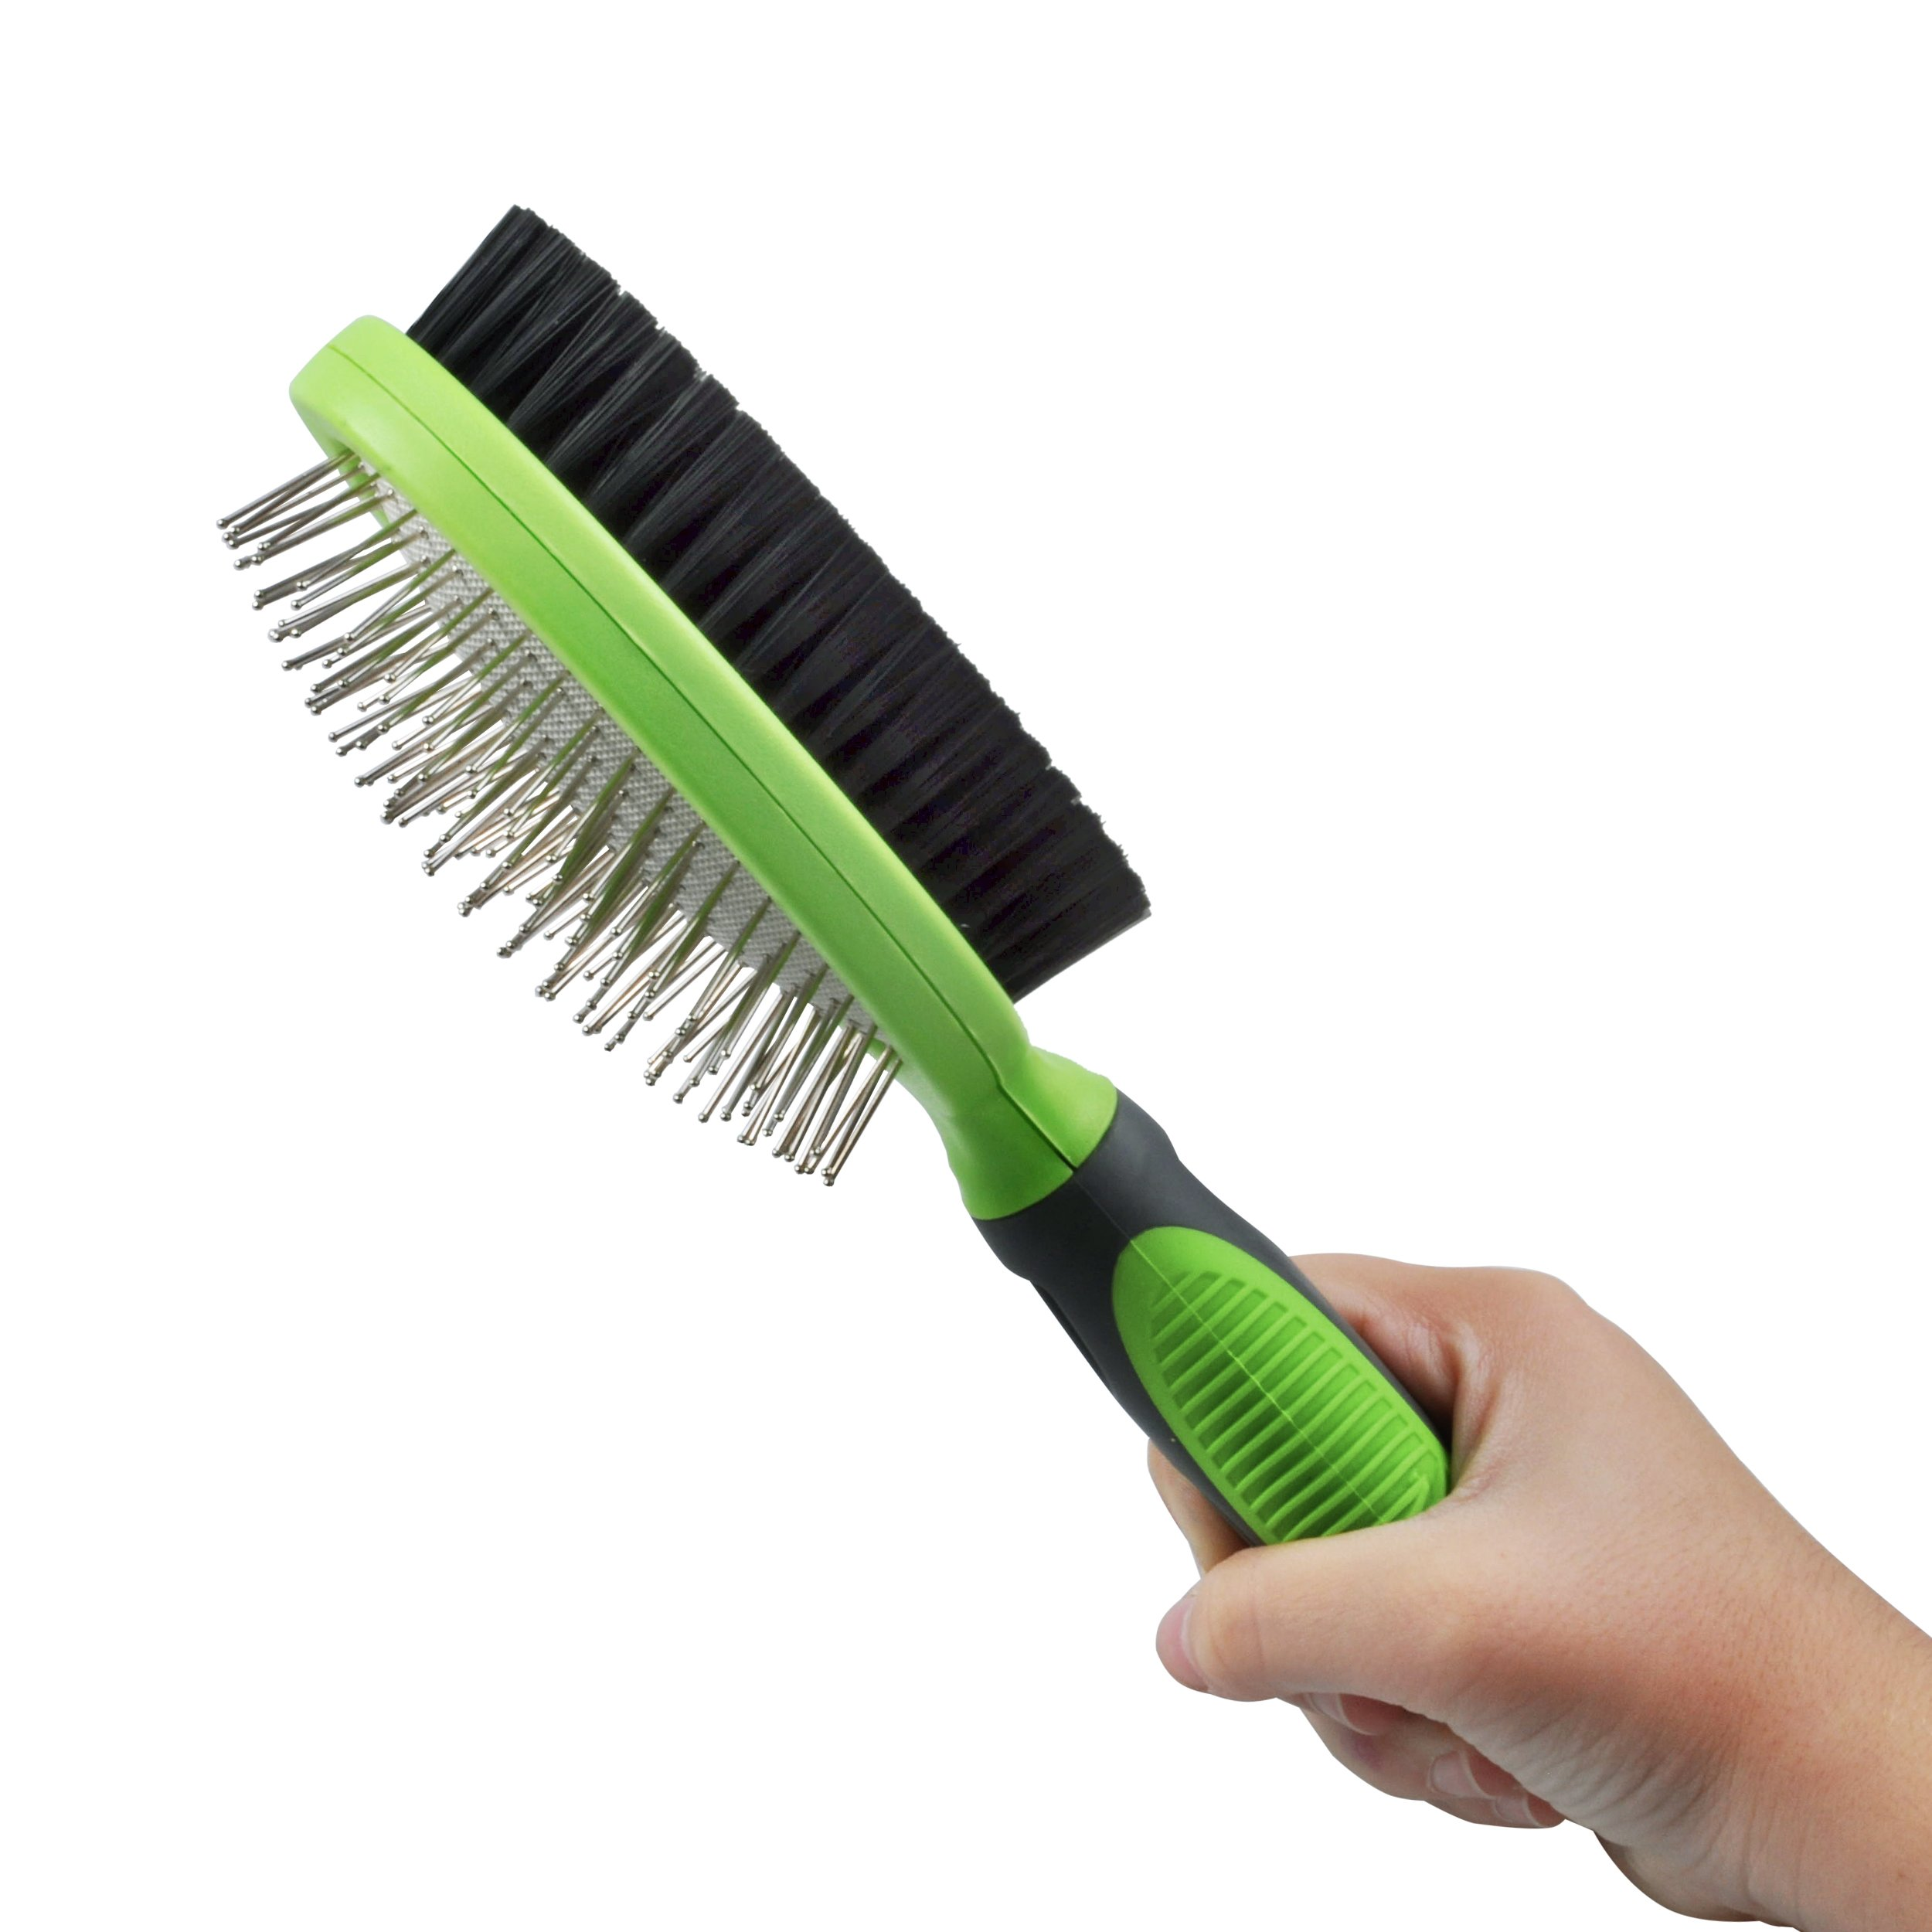 Double Sided Pin and Bristle Pet Grooming Brush by Petio Basics for Detangling and Shedding